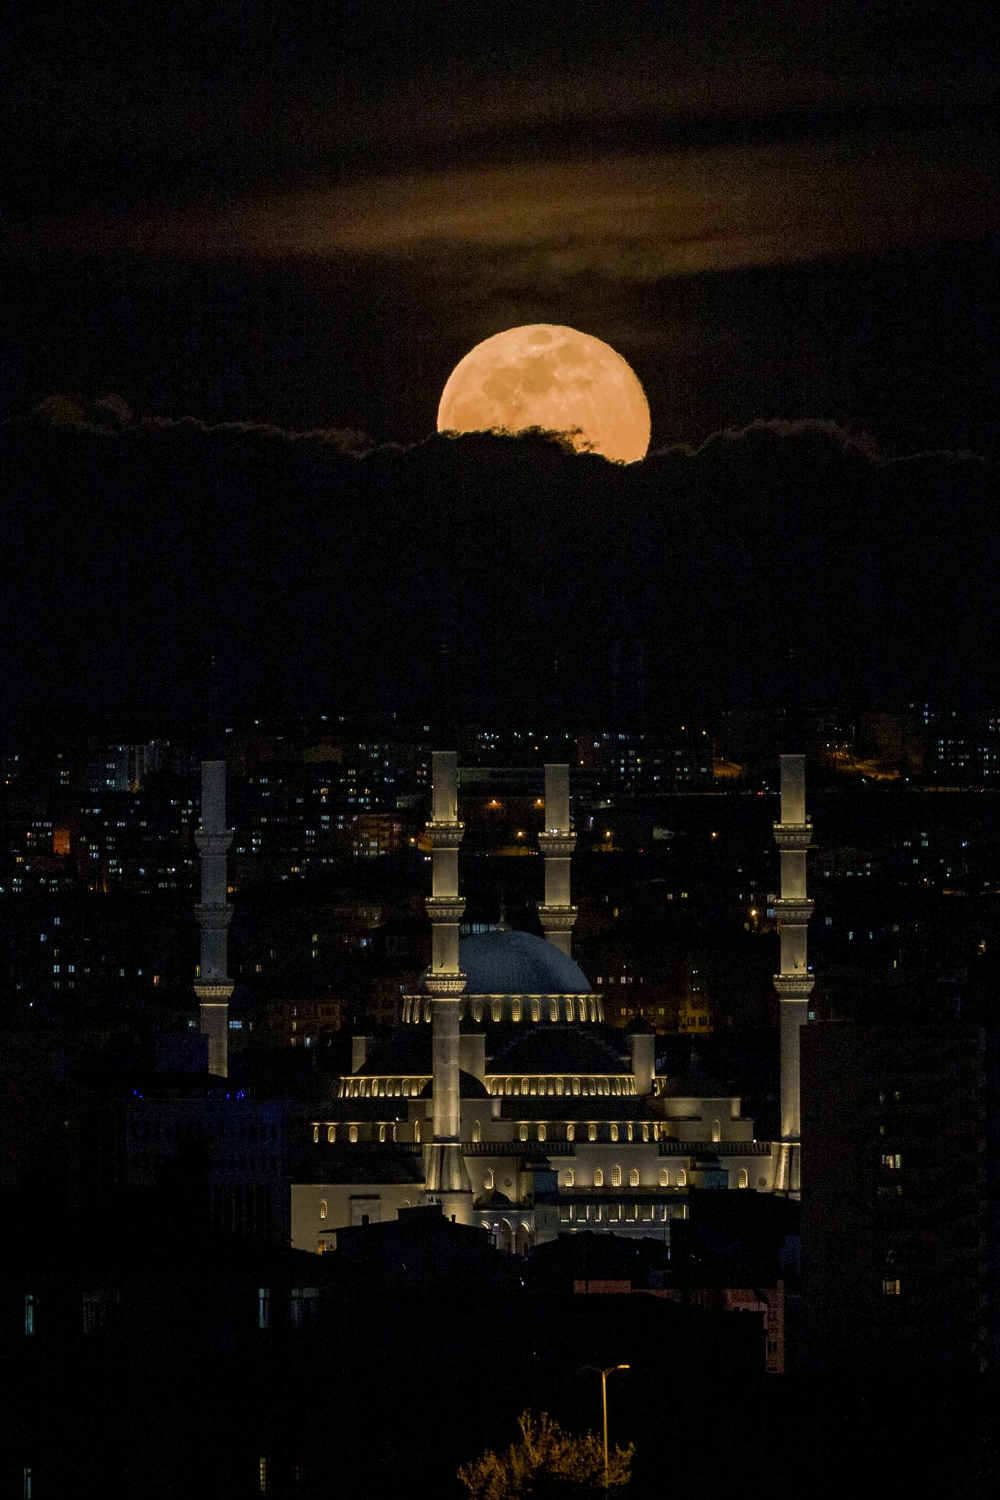 Space Photos Of The Week The Super Pink Moon In 2020 Photos Of The Week Space Photos Super Moon